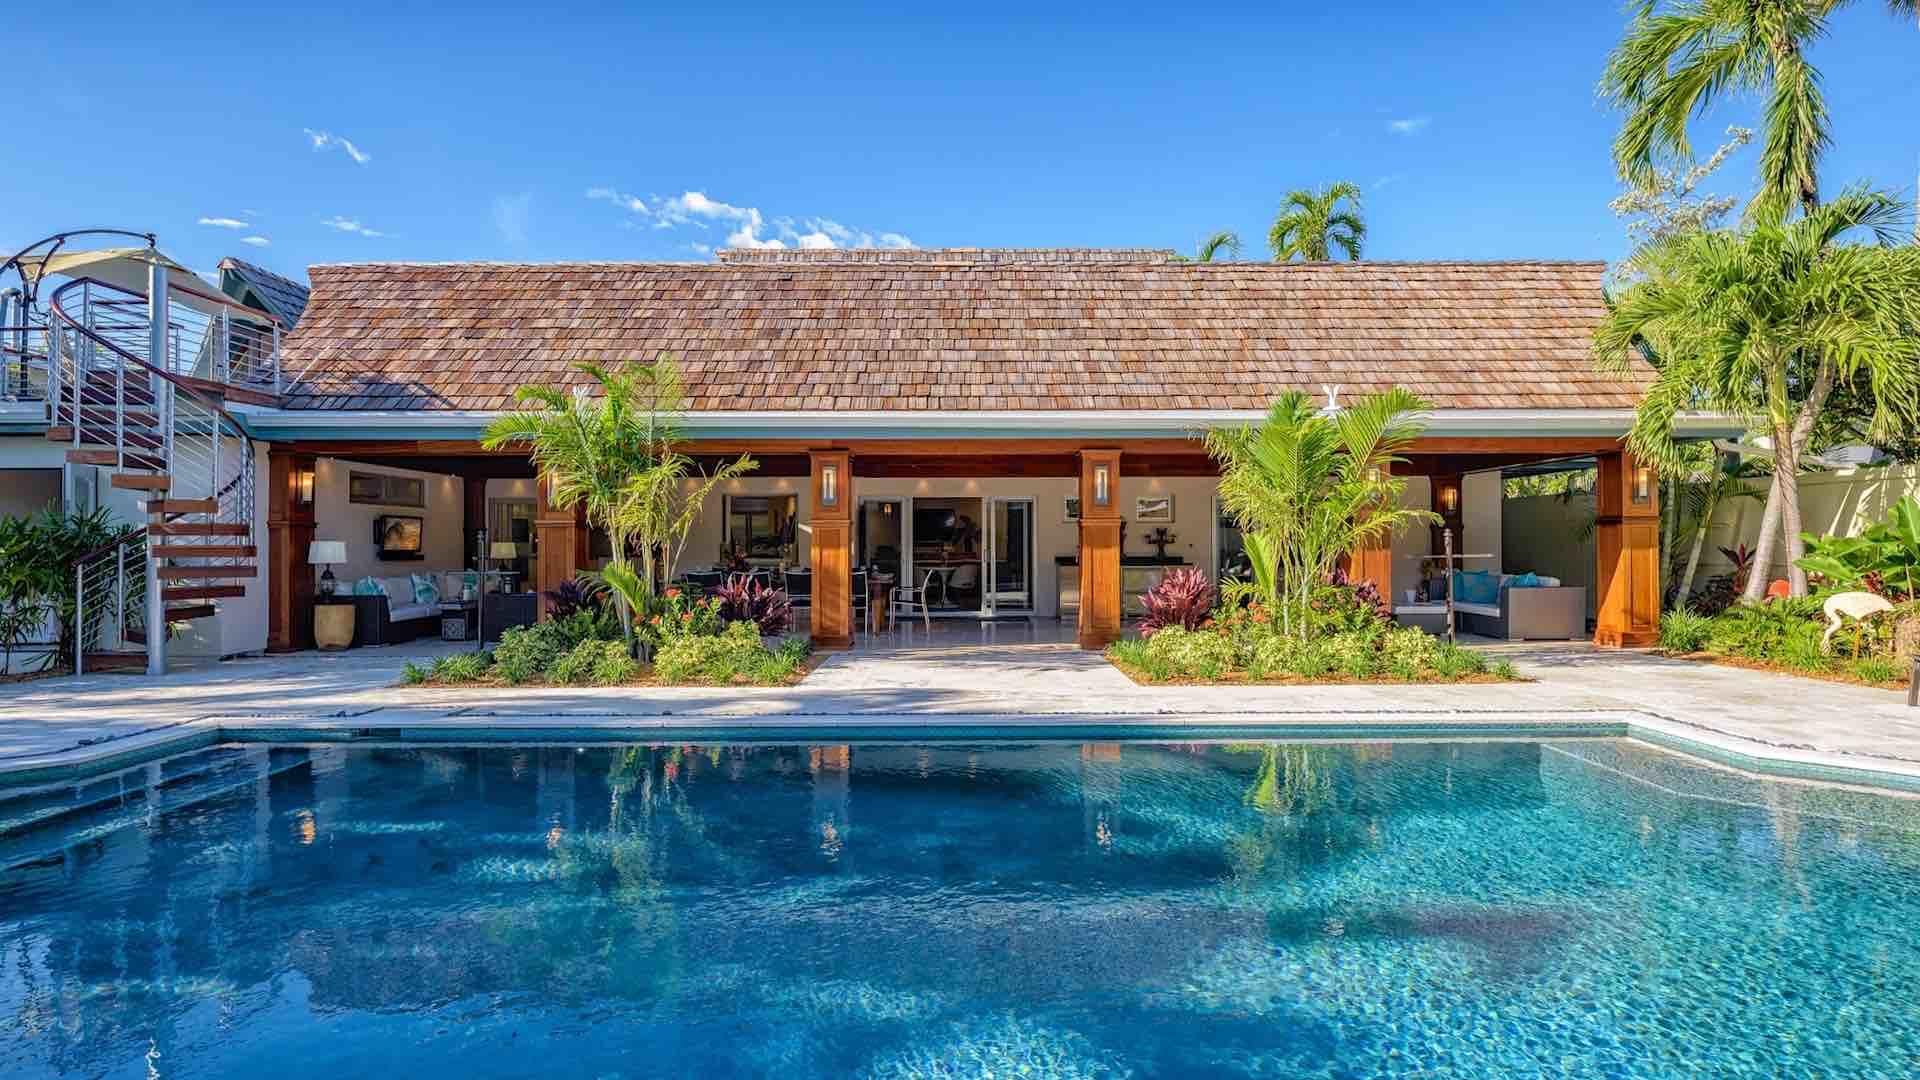 The Polynesian House is an extraordinarily unique and whimsical home, designed to capture the culture and experience of island life...